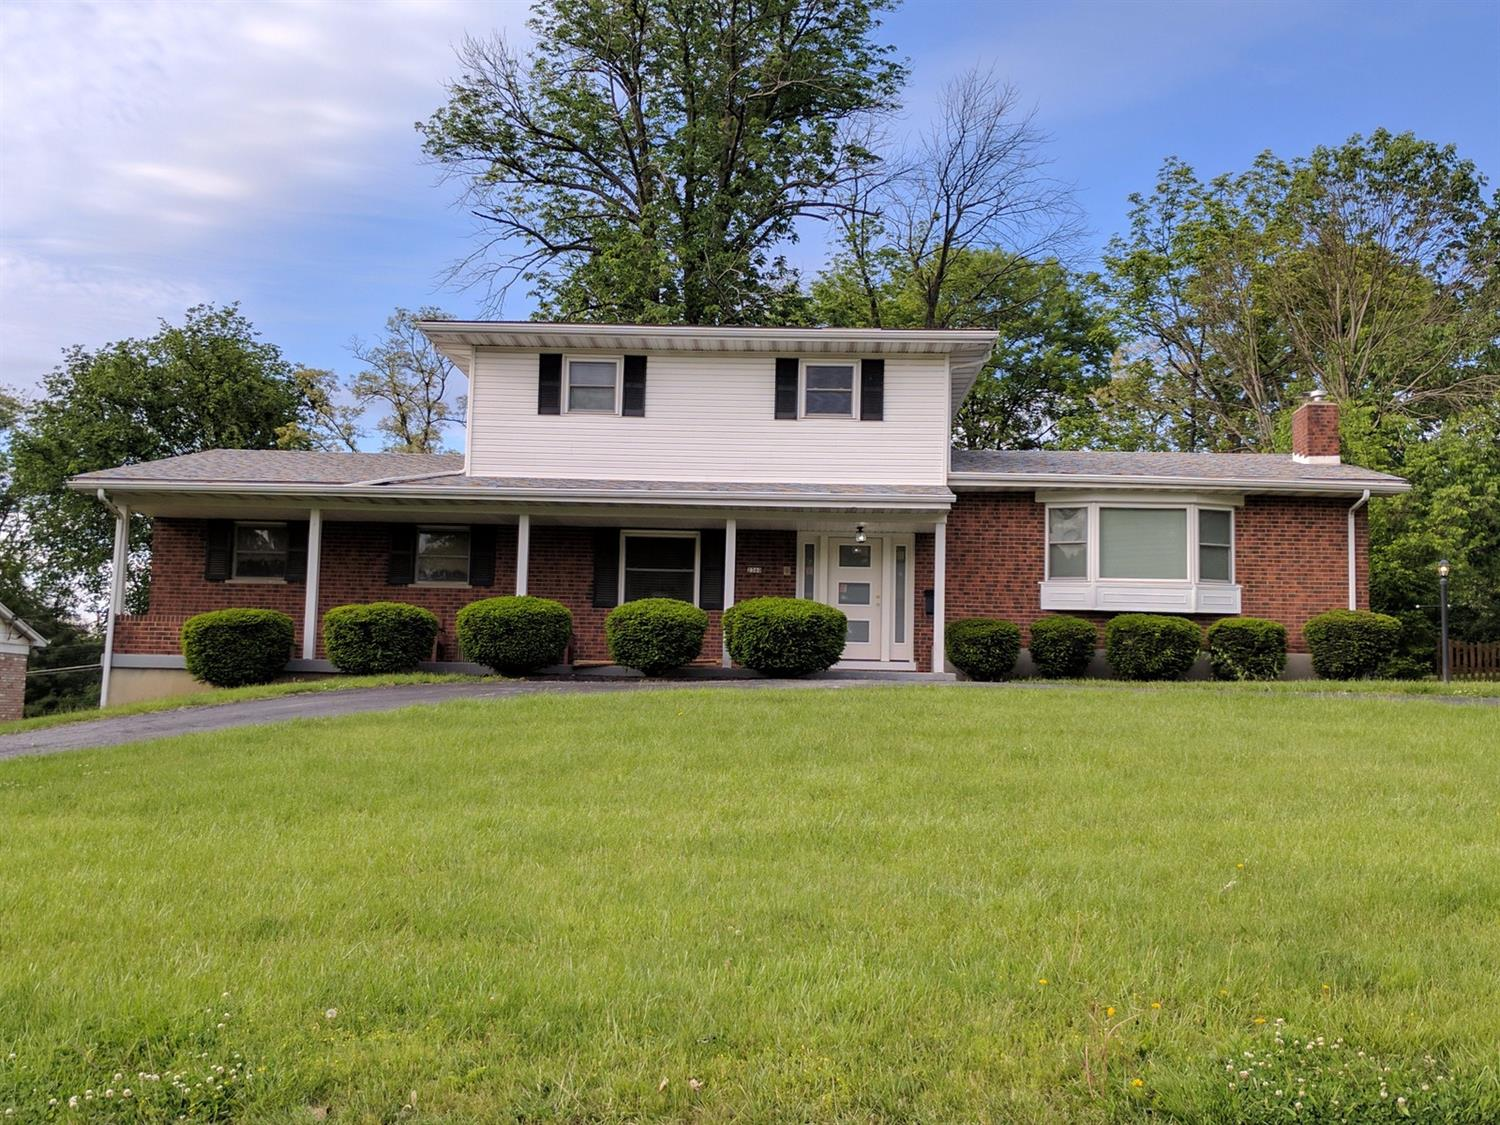 2360 Larkfield Dr Amberley, OH